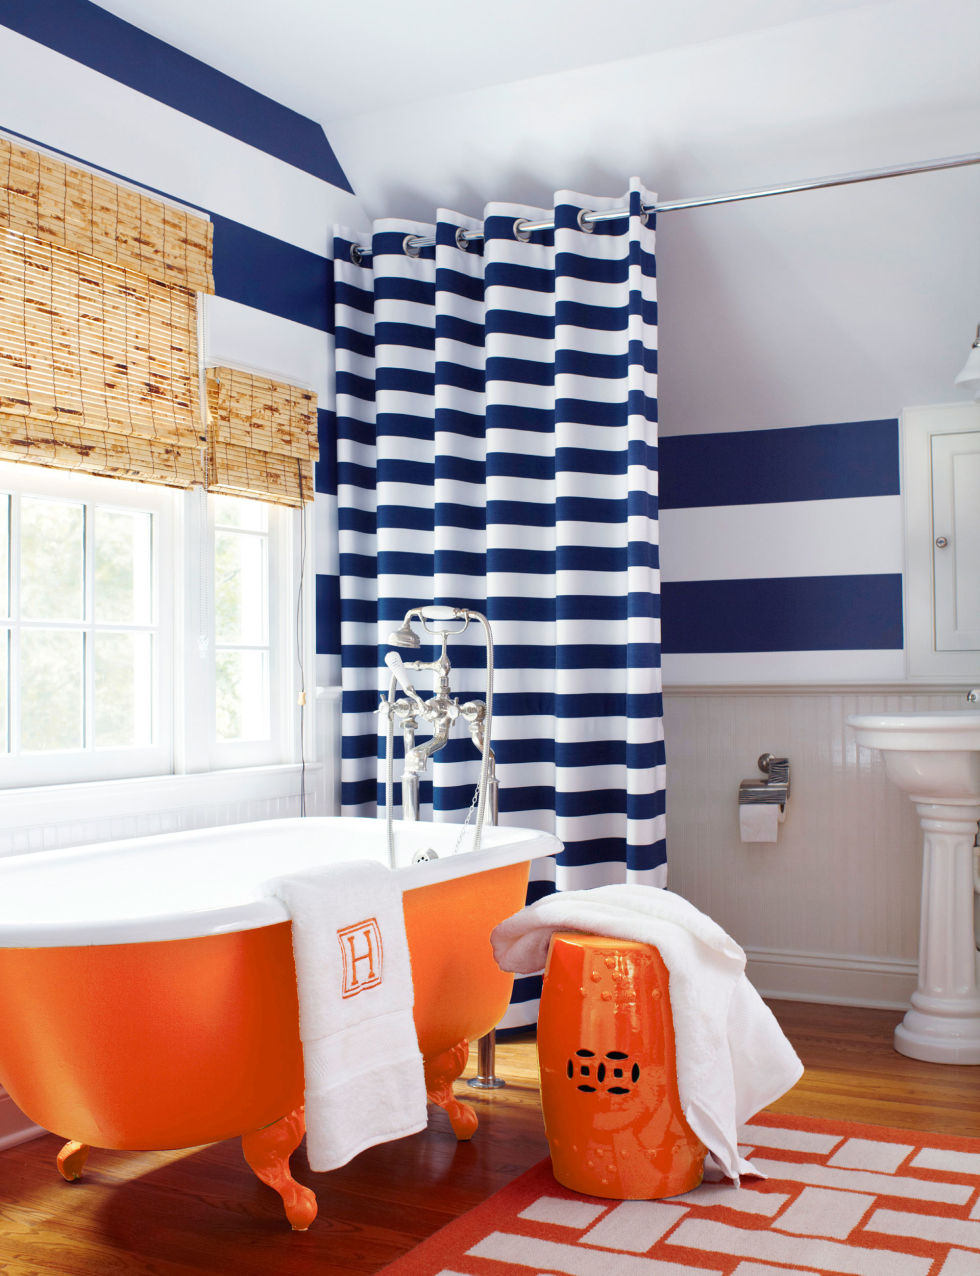 Brighten Your Bathroom - Eclectic Home